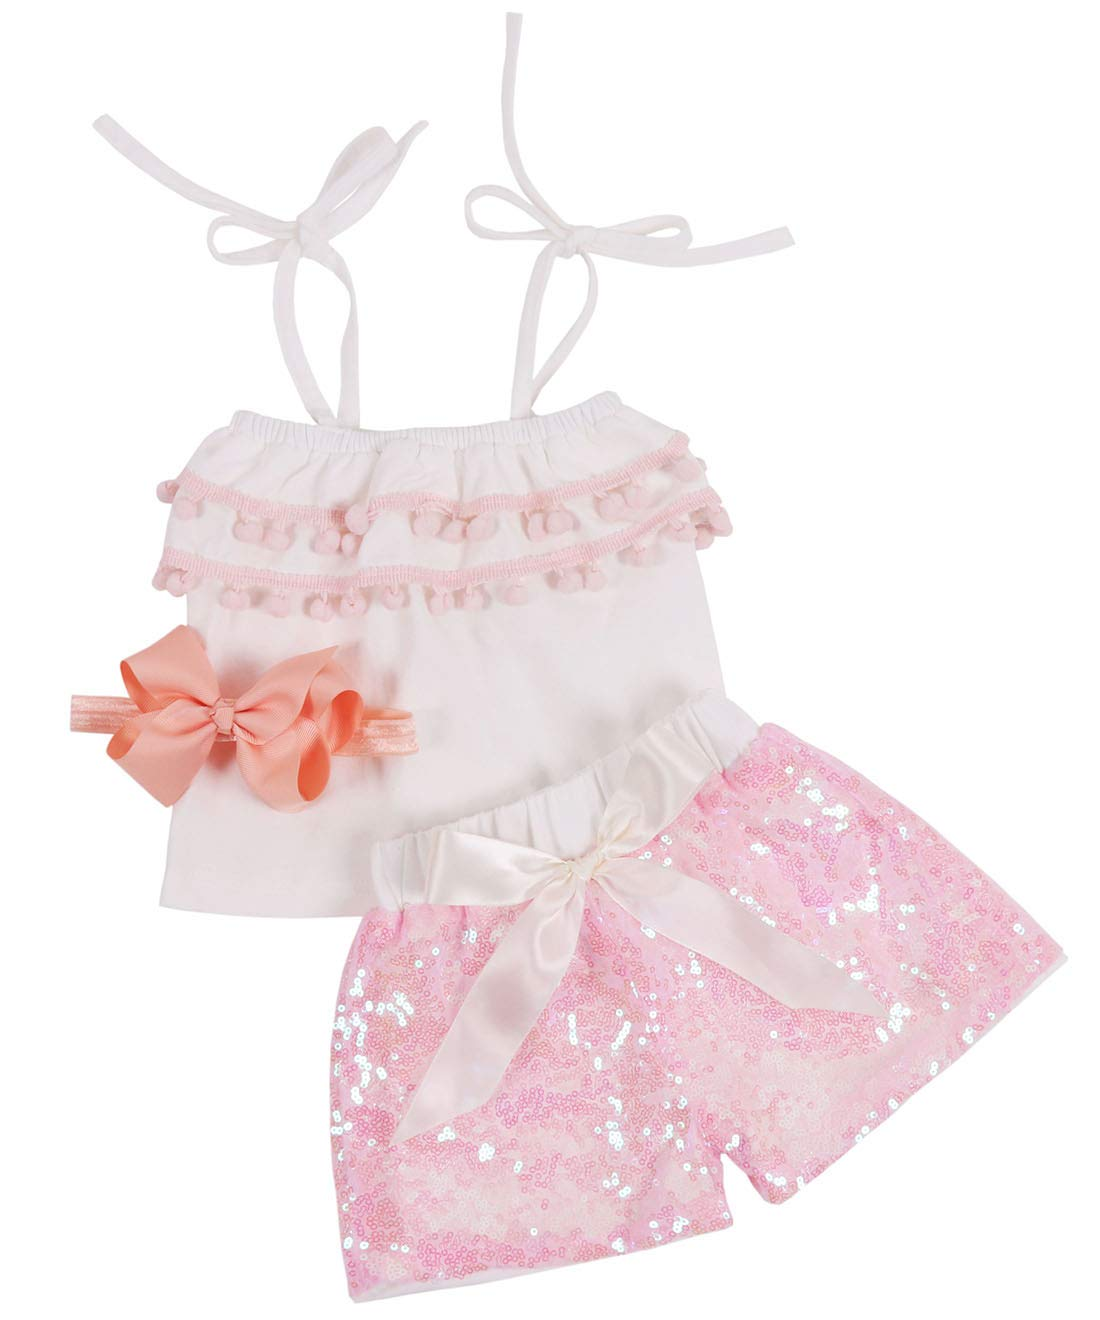 Baby Girls Sequin Shorts Outfits Kids Sparkle Toddler Rainbow Shirt Tops Glitter on Both Sides Shorts Outfits with Headband